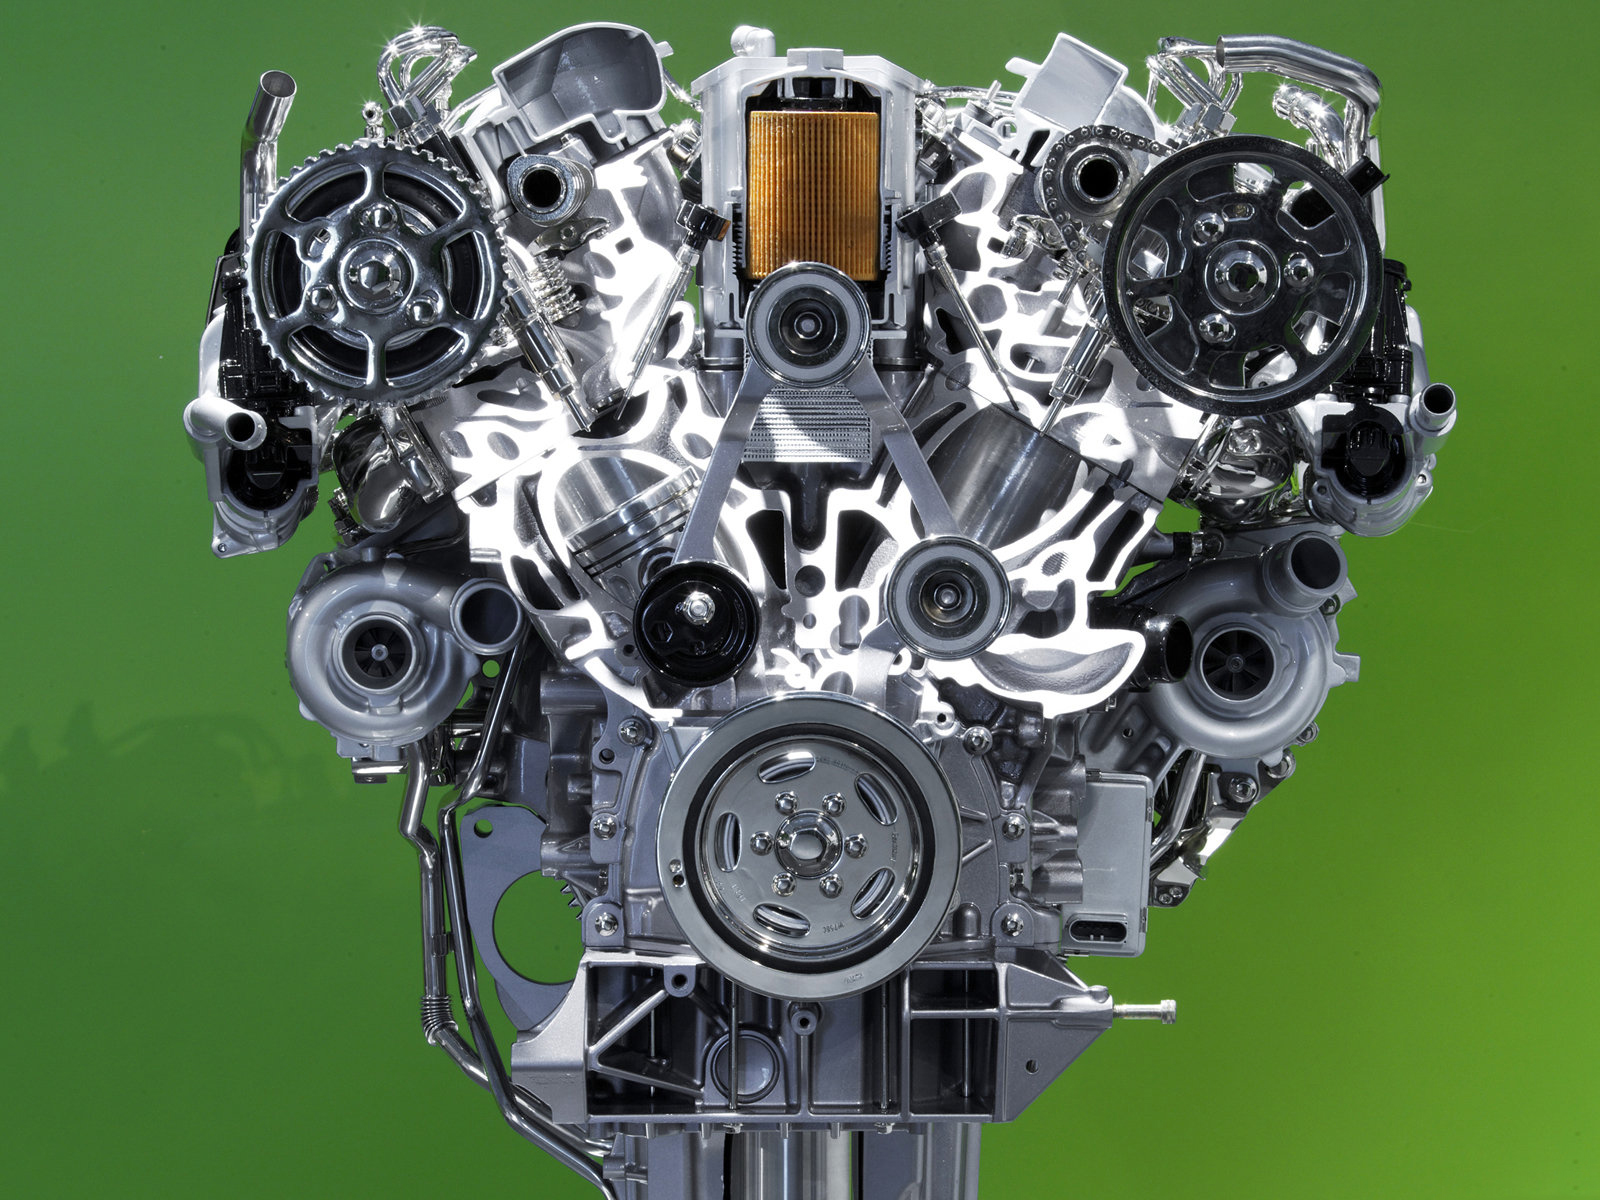 04 Range Rover Engine Diagram Great Design Of Wiring 2004 Land Discovery V6 Motor Schematics Free Image 2003 2005